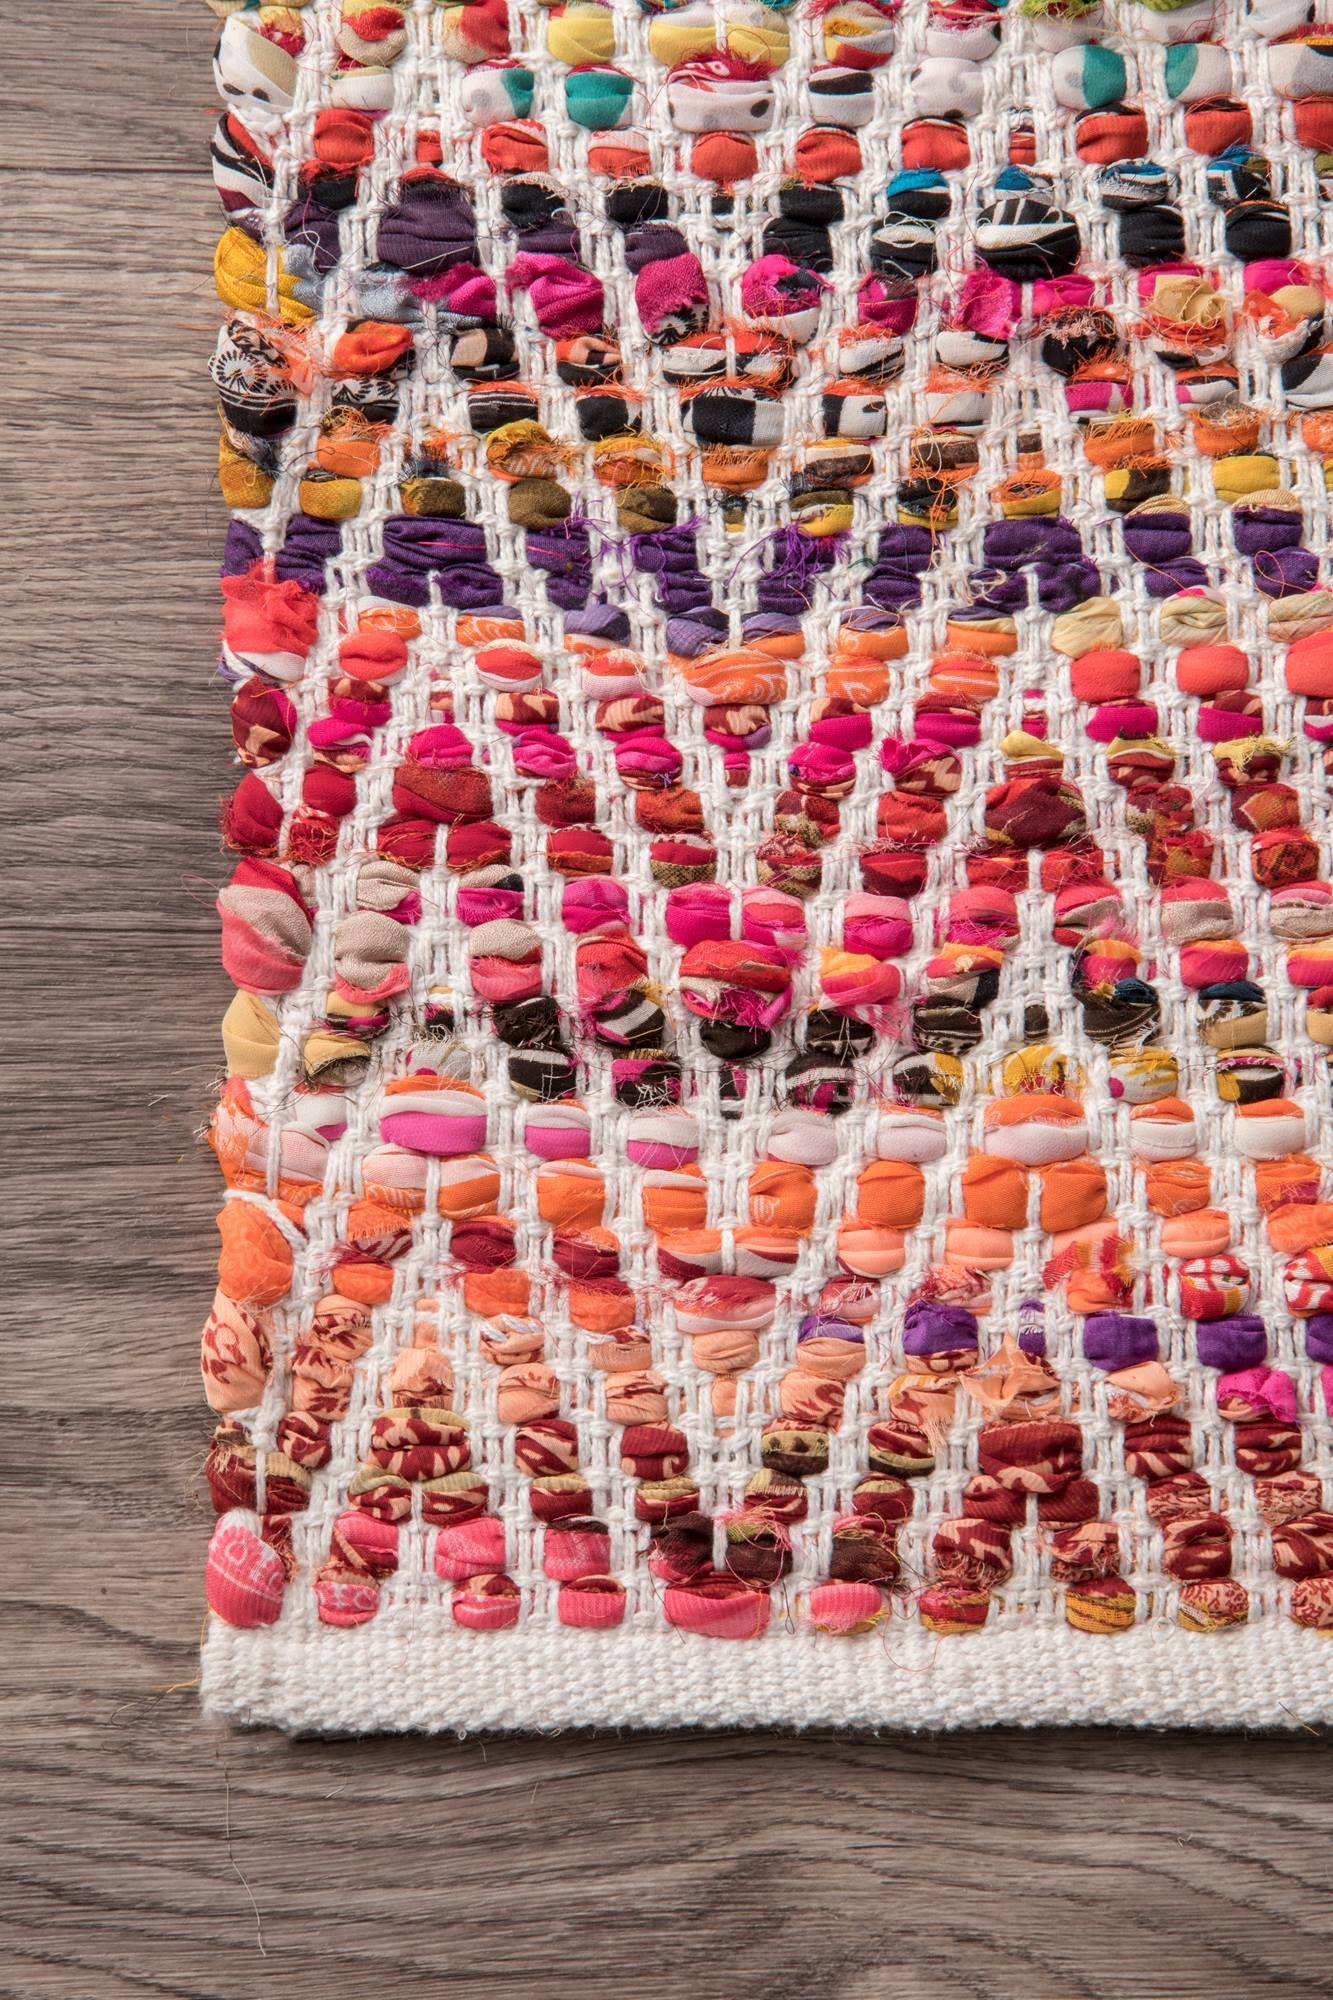 nuLOOM Hand Woven Candy Striped Chevron Area Rugs, 2' x 3', Magenta by nuLOOM (Image #3)